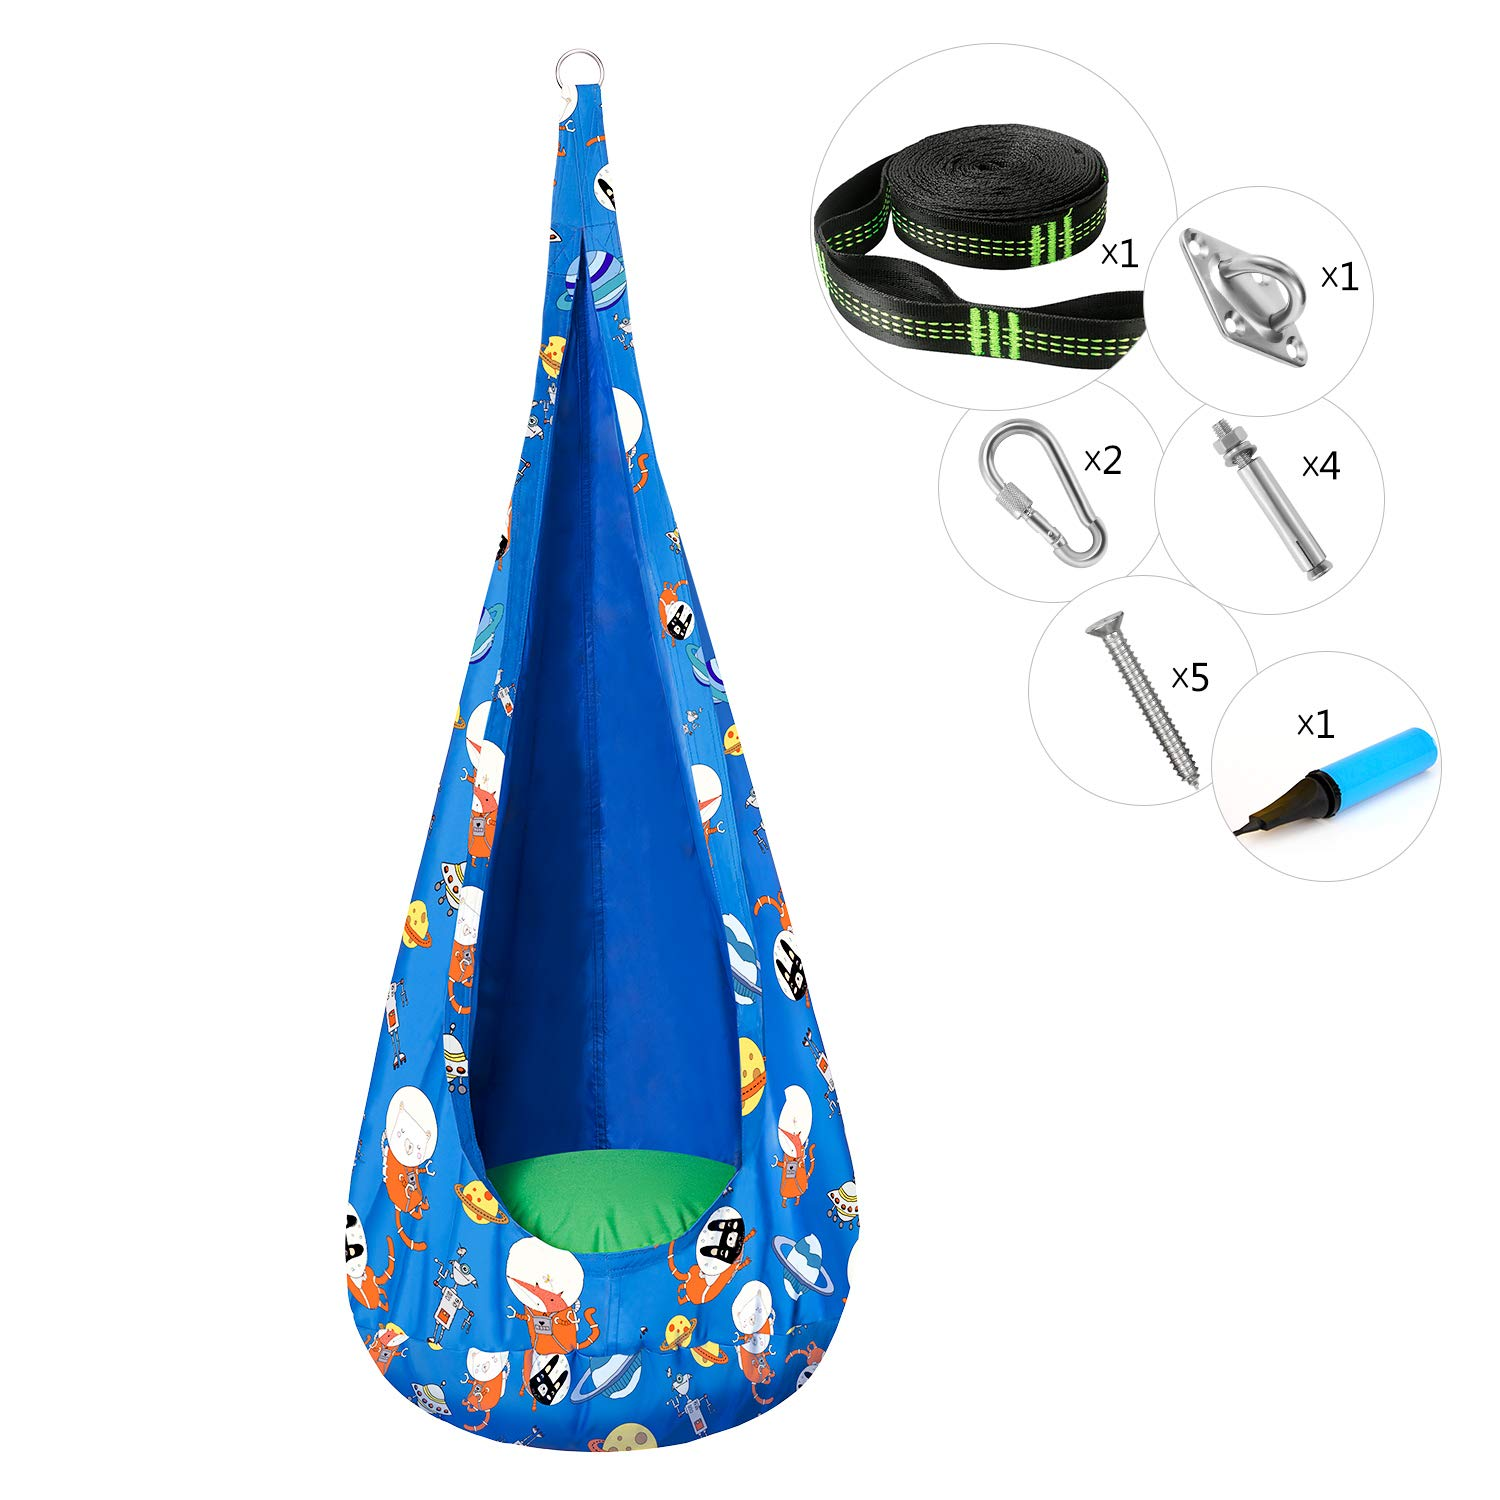 Greenstell Kids Pod Swing Seat with PVC Air Cushion and Hardware Kits, Child Hammock Chair Cartoon Printing Pattern,100 Cotton Child Hanging Chair for Indoor and Outdoor Navy Blue